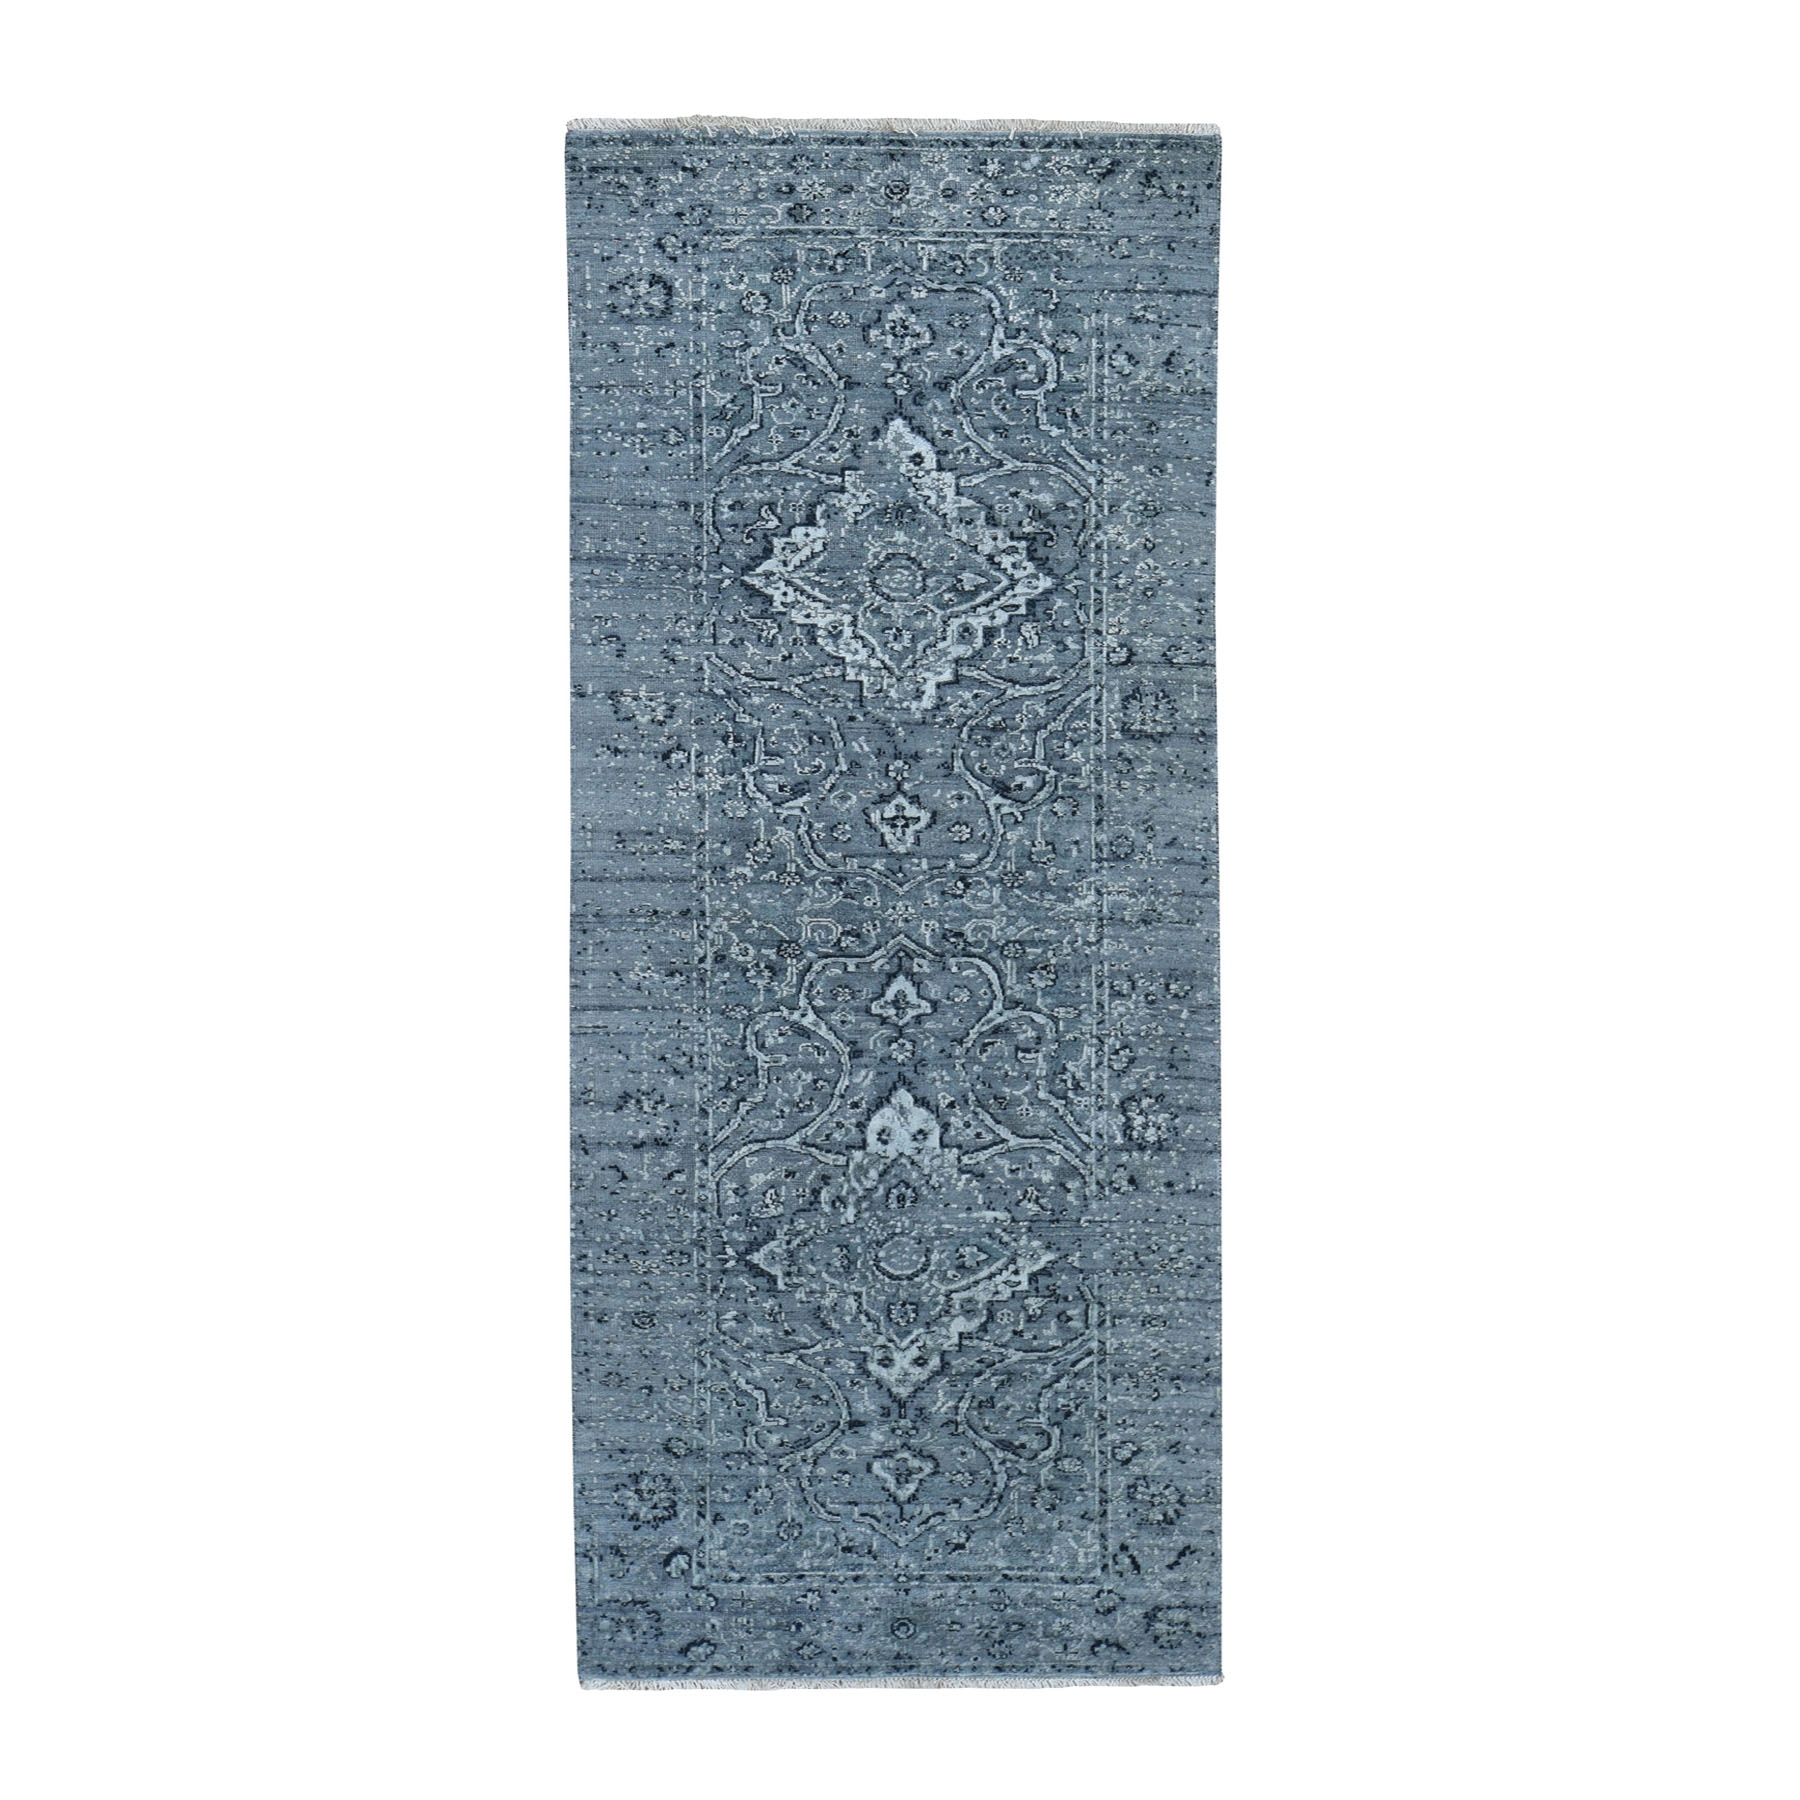 "2'9""X7'10"" Gray Broken Persian Erased Design Pure Silk With Textured Wool Runner Hand-Knotted Oriental Rug moad7b70"